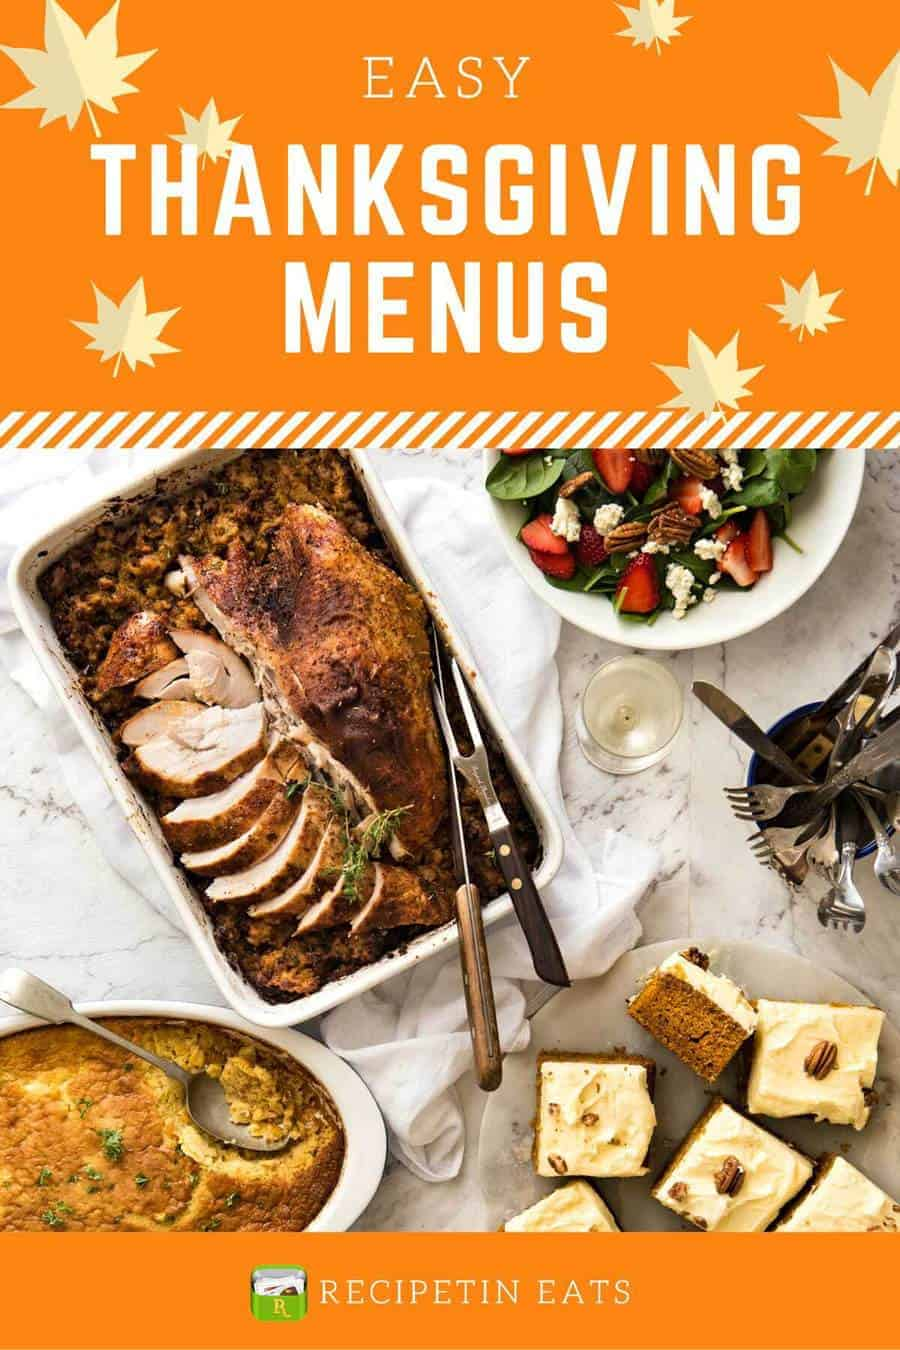 Easy Thanksgiving Menus www.recipetineats.com